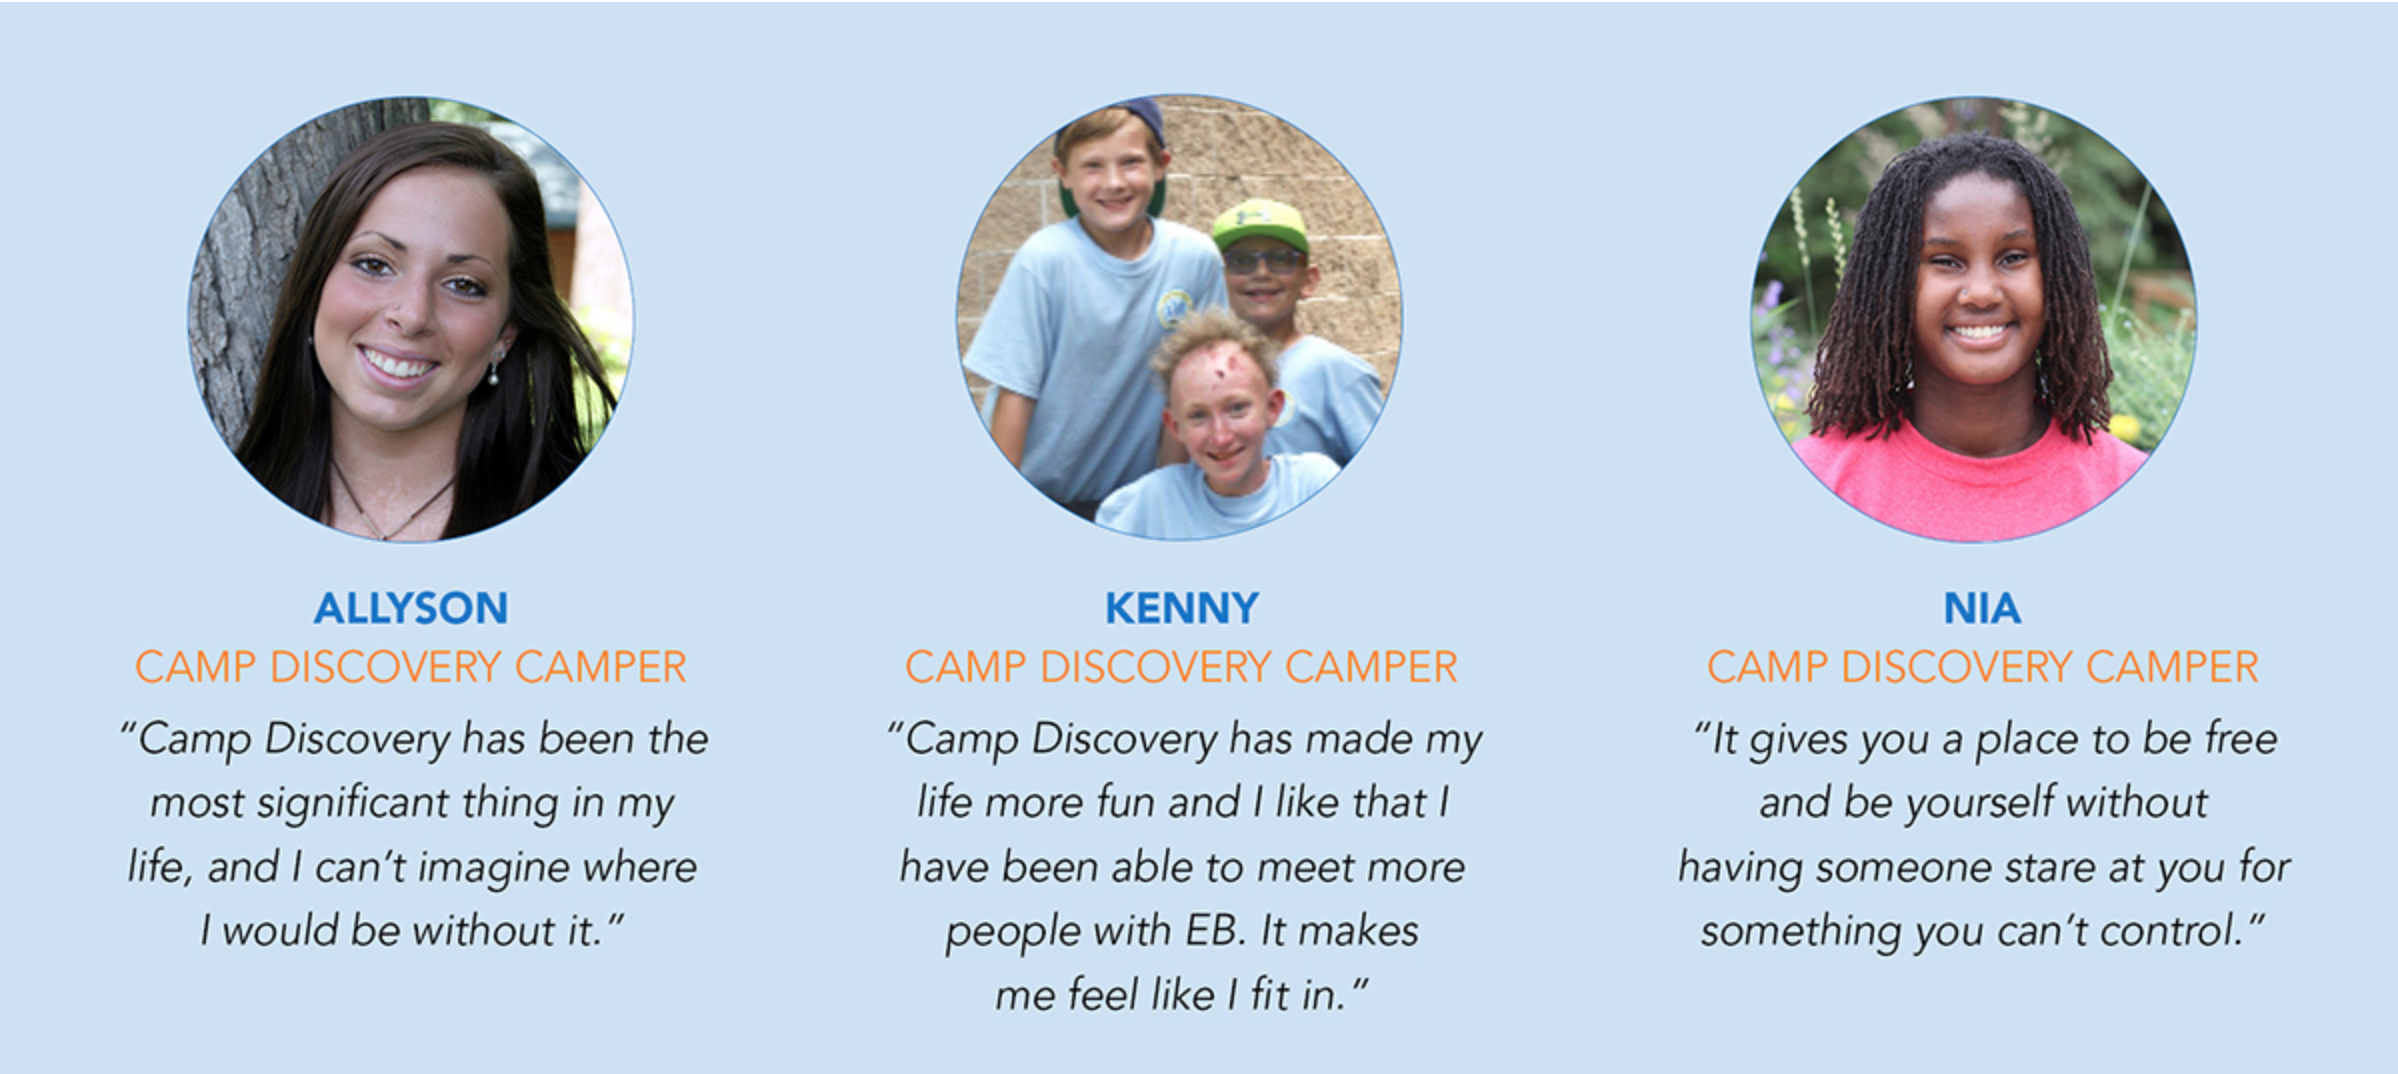 Camp Discovery commissary quotes